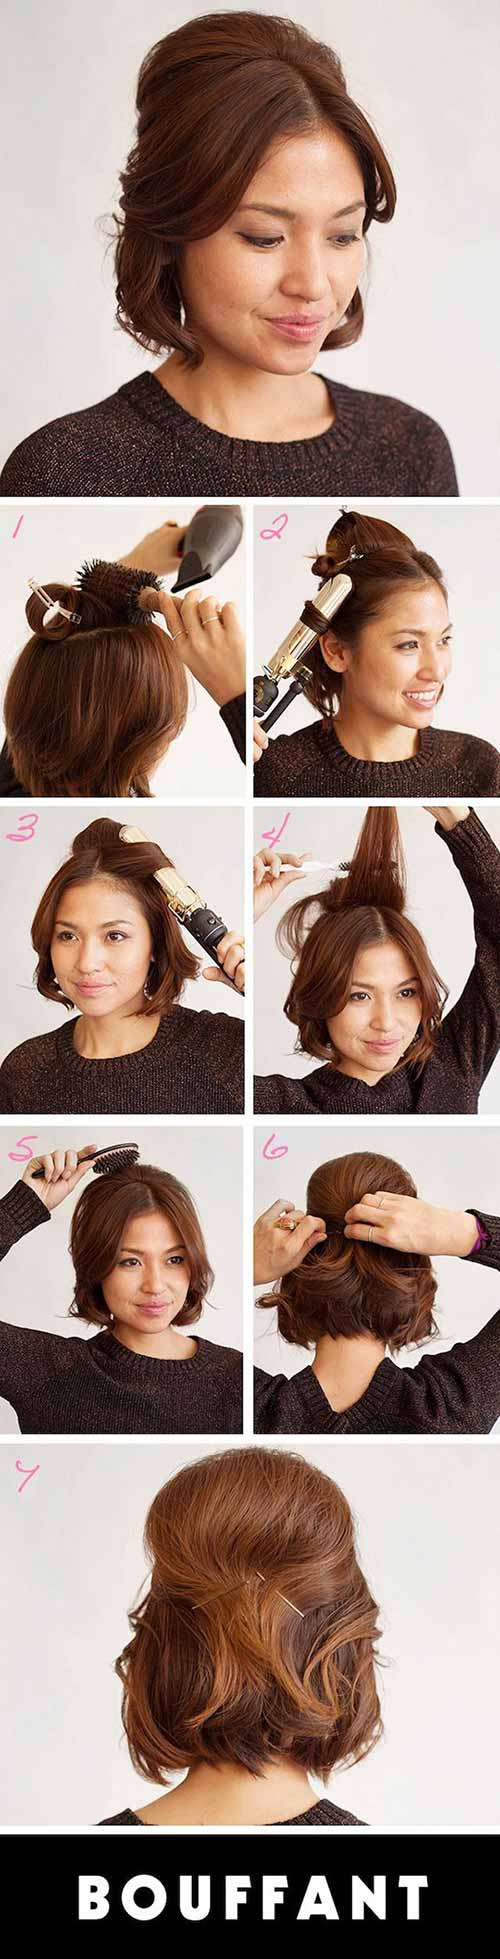 20 Incredible DIY Short Hairstyles - A Step-By-Step Guide